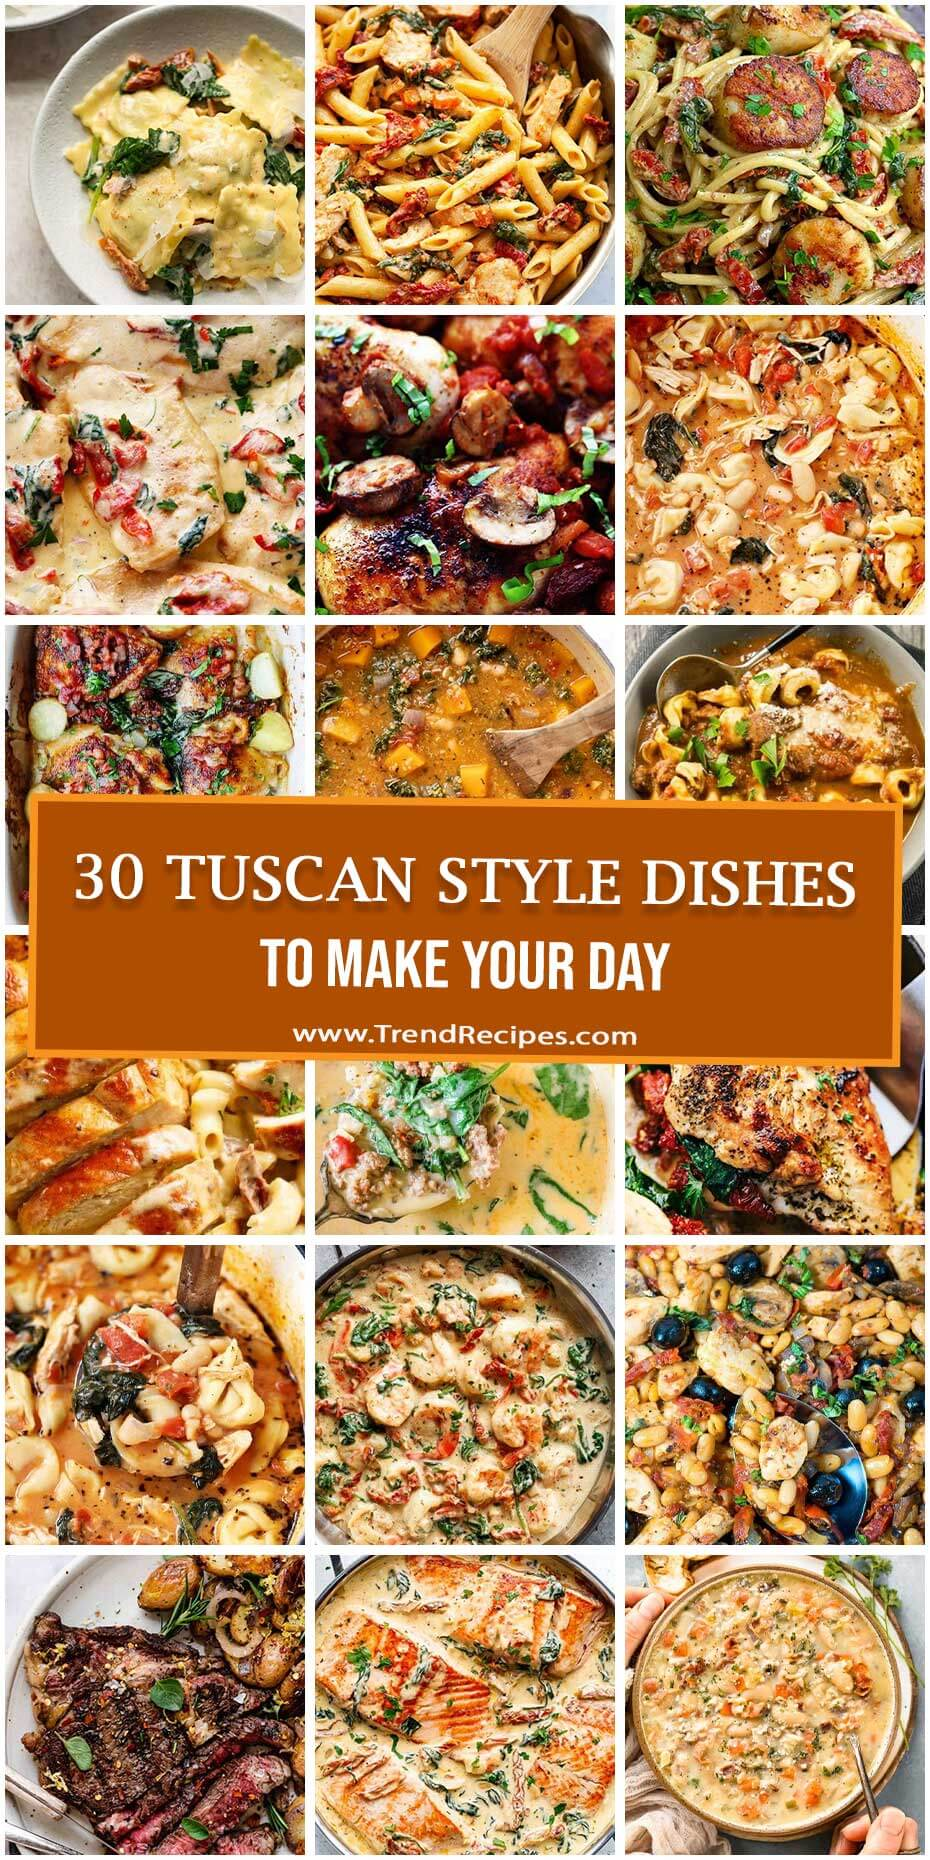 30 Tuscan Style Dishes To Make Your Day